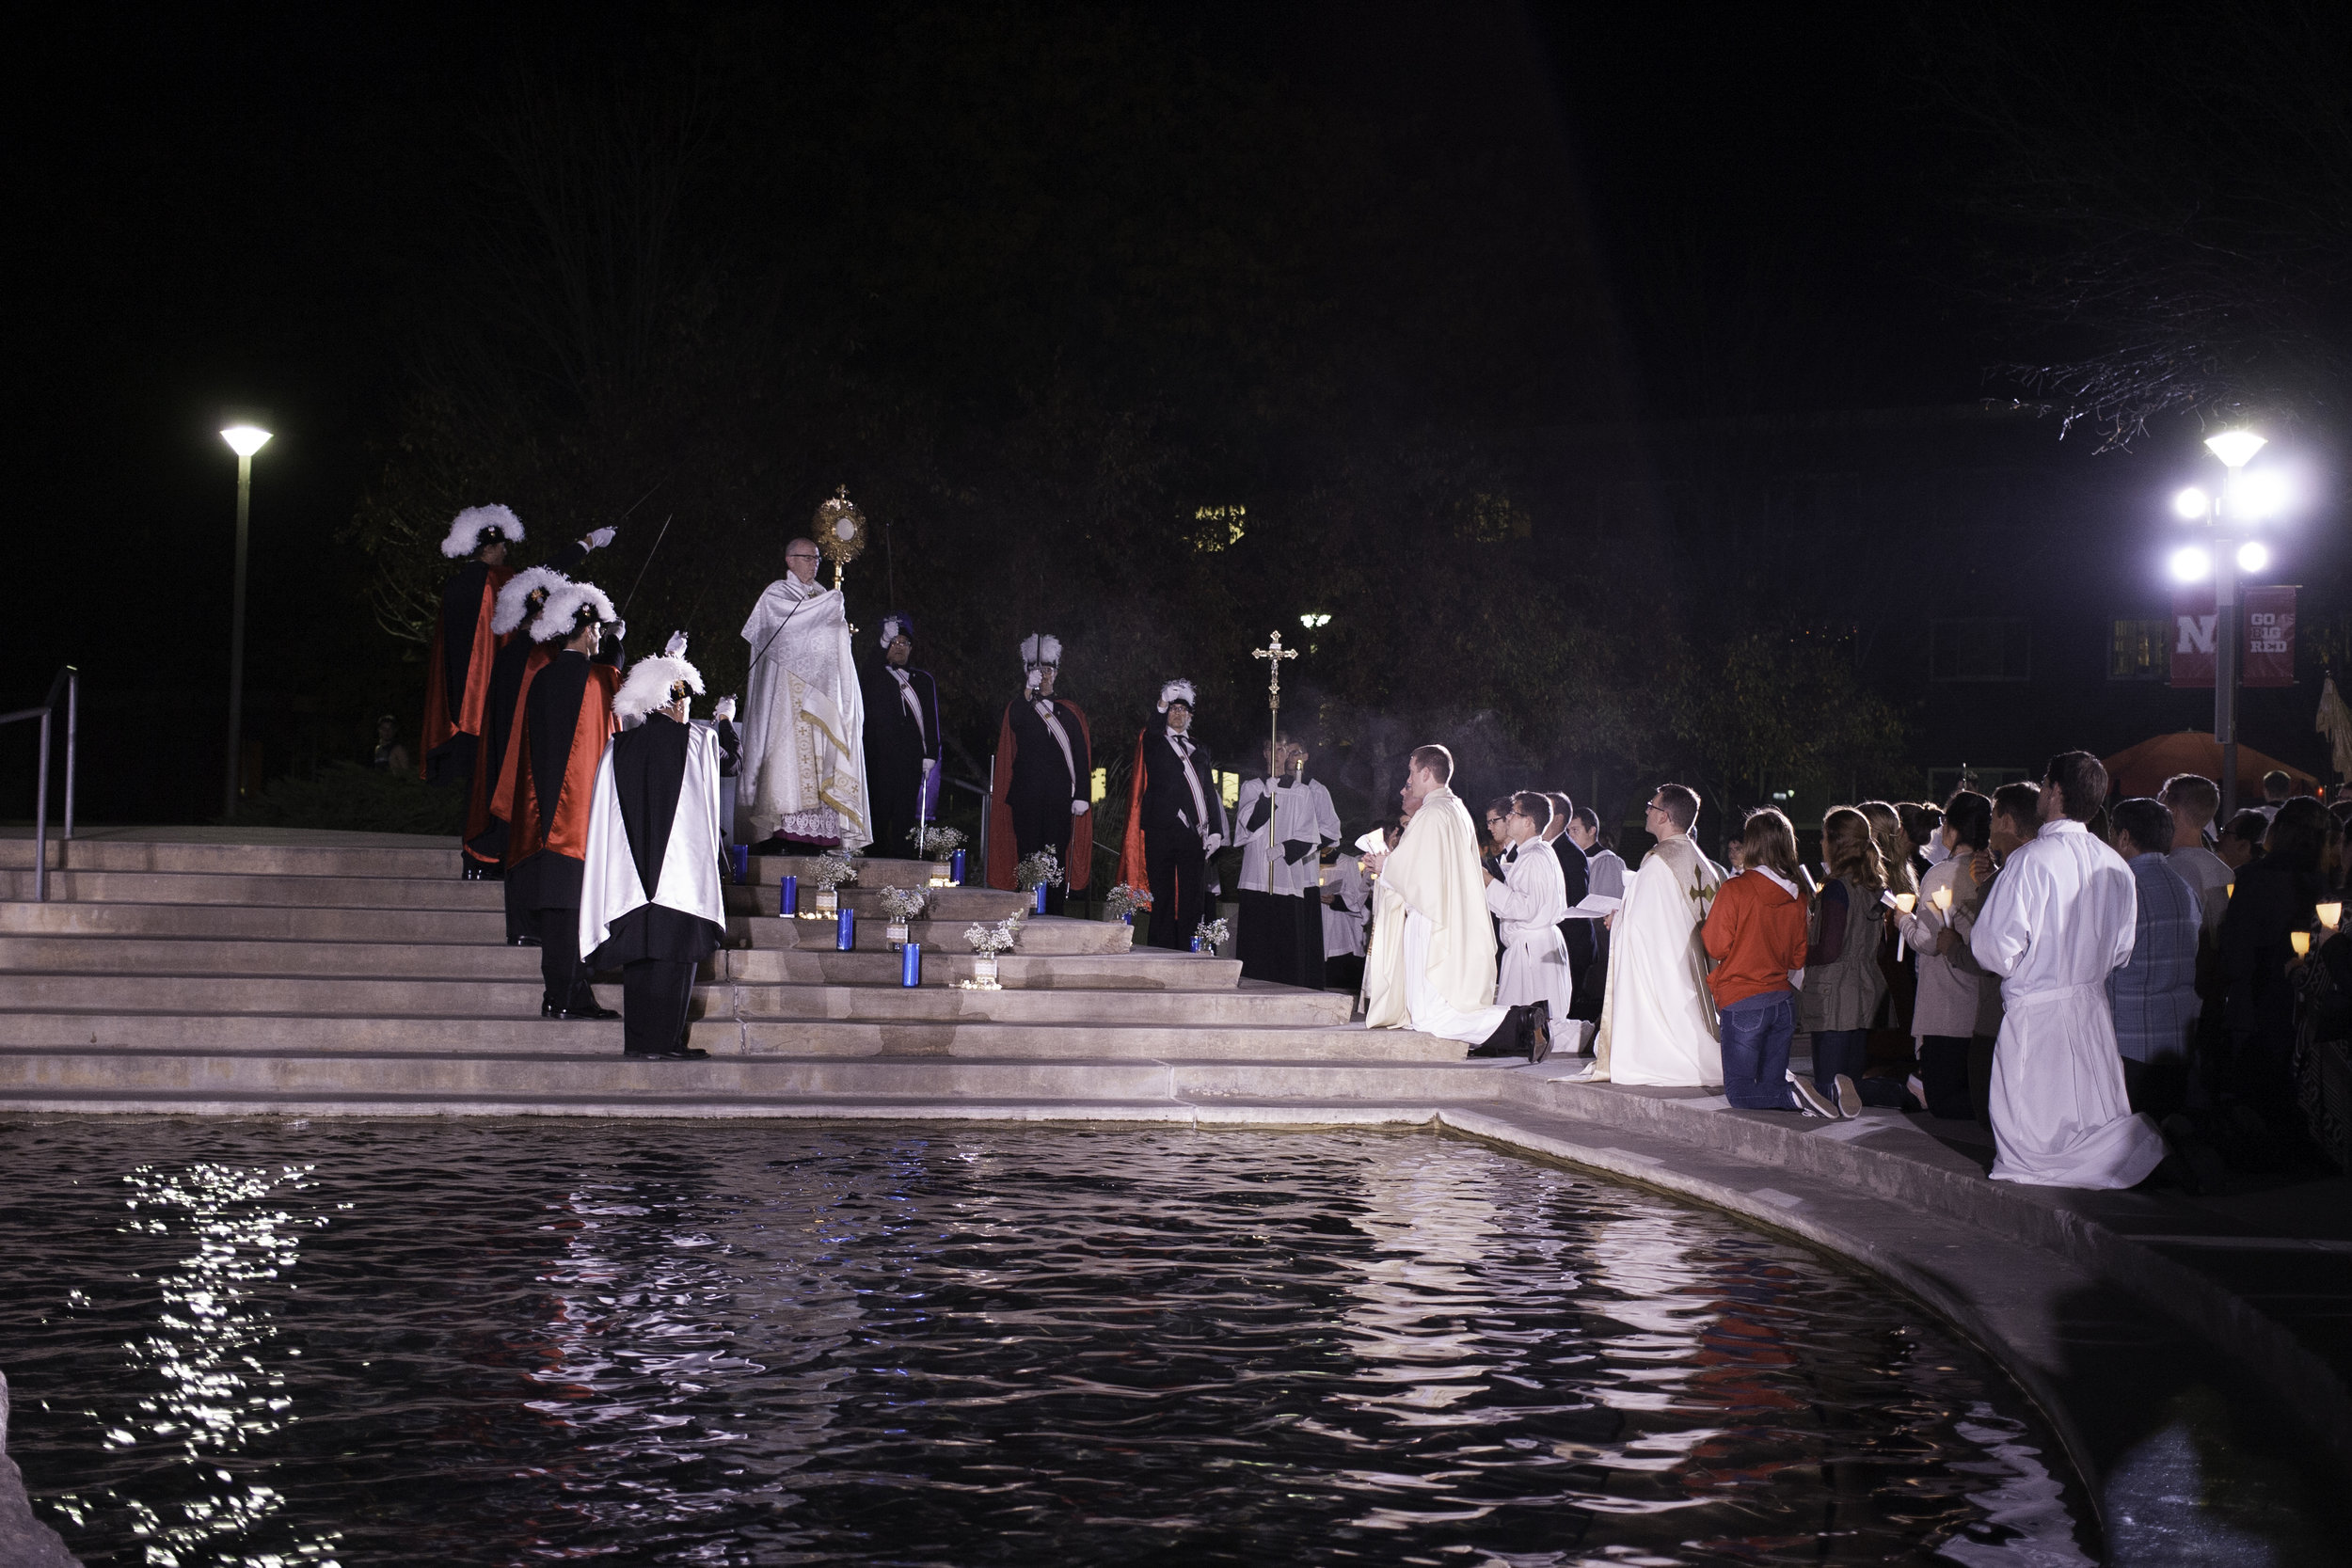 Bishop Conley holds the Eucharist by the Broyhill Fountain on the Nebraska Union Plaza as part of the Newman Center's annual Eucharistic Procession.